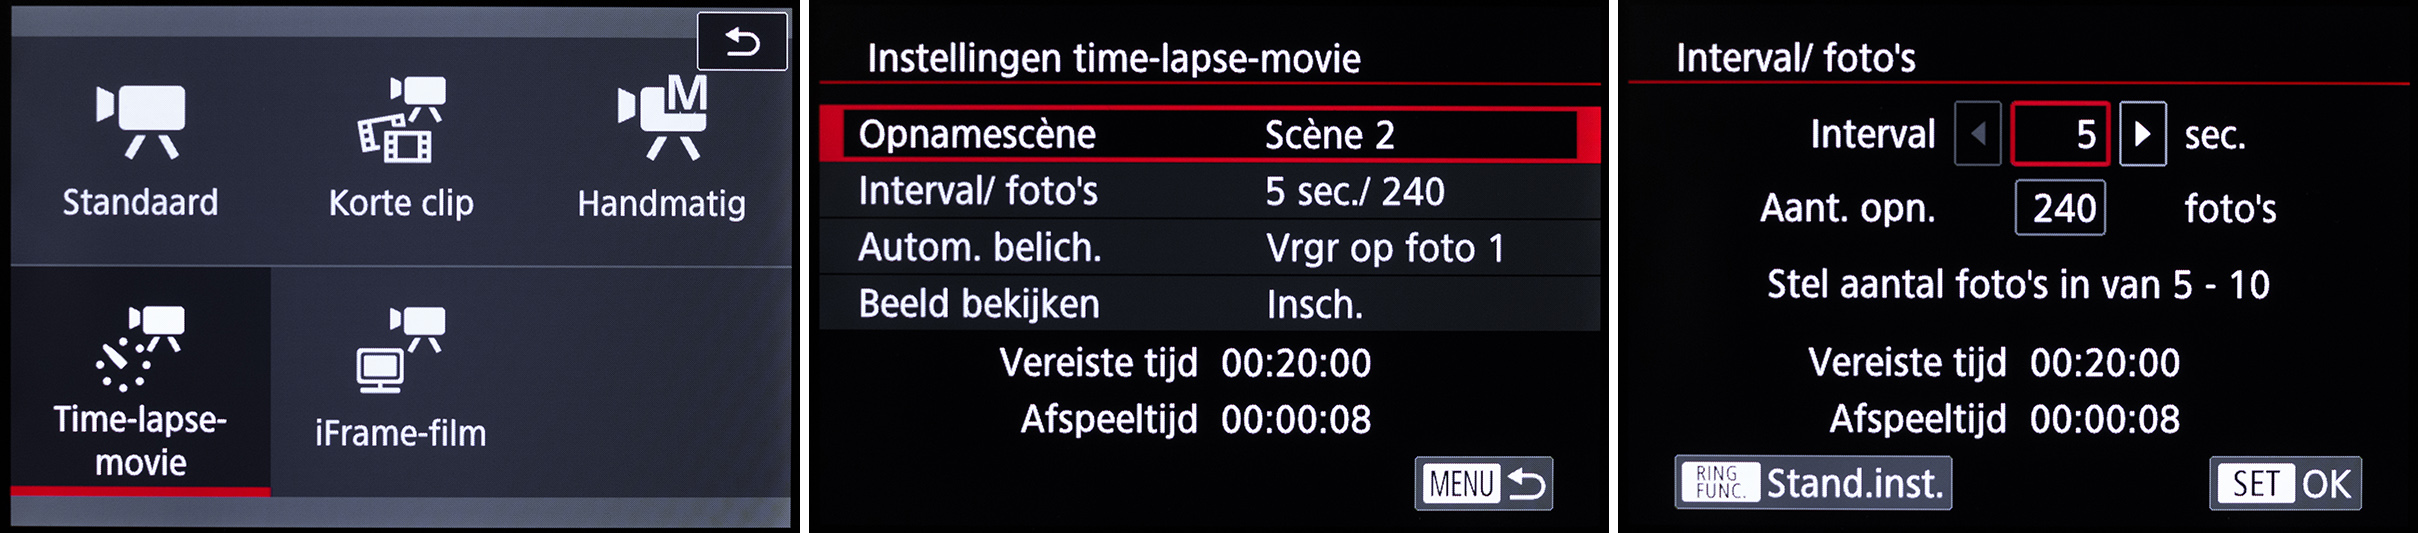 timelapse-movie